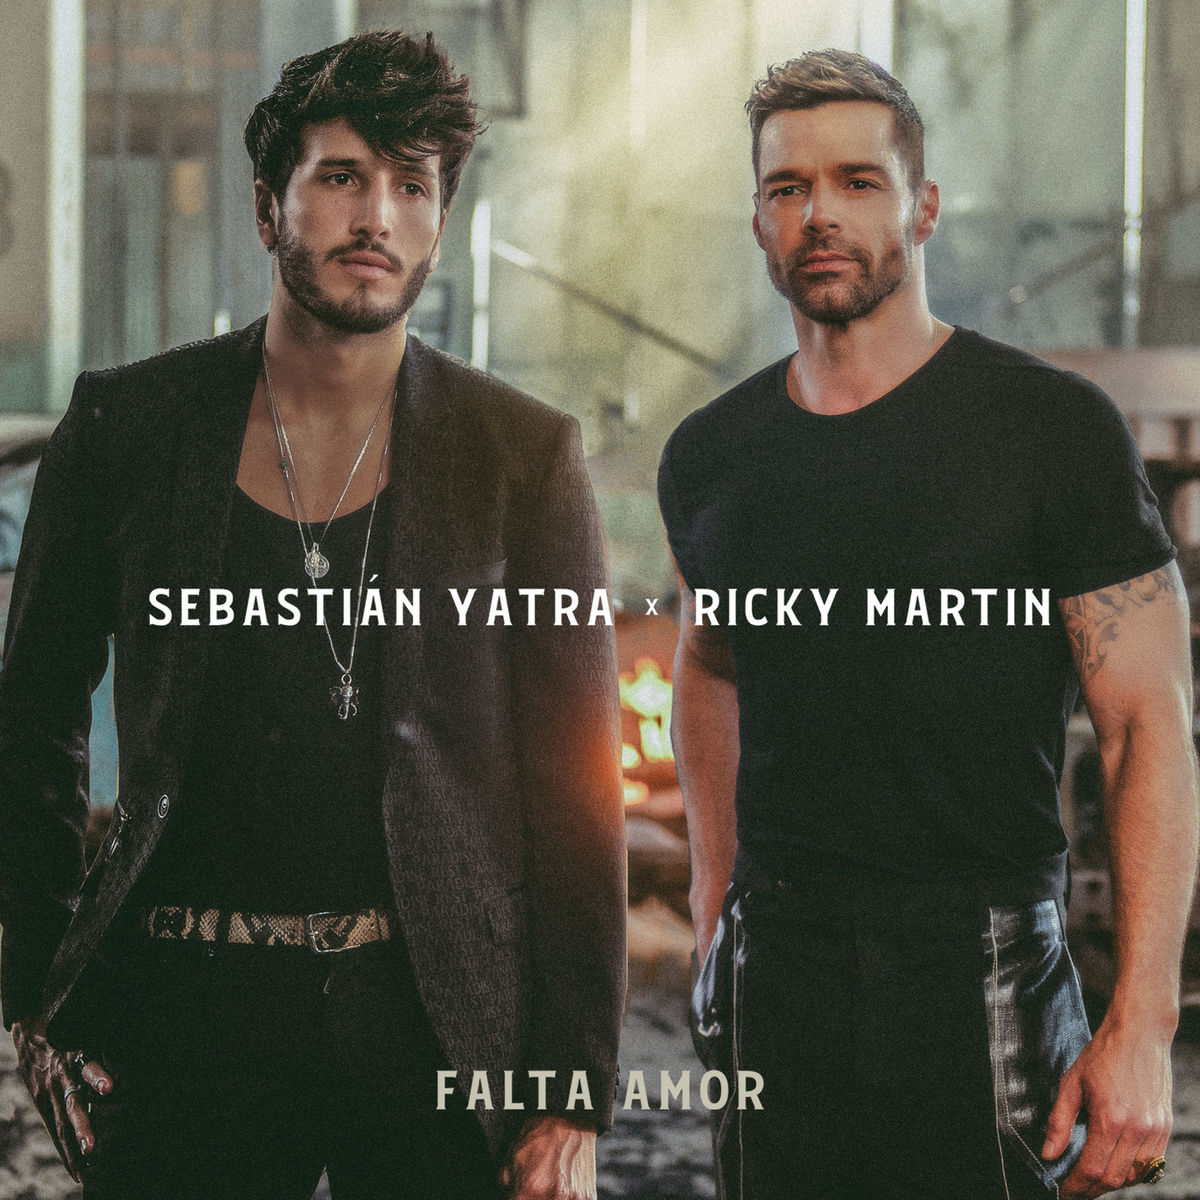 Sebastián Yatra, Ricky Martin  - Falta Amor (Official Video)